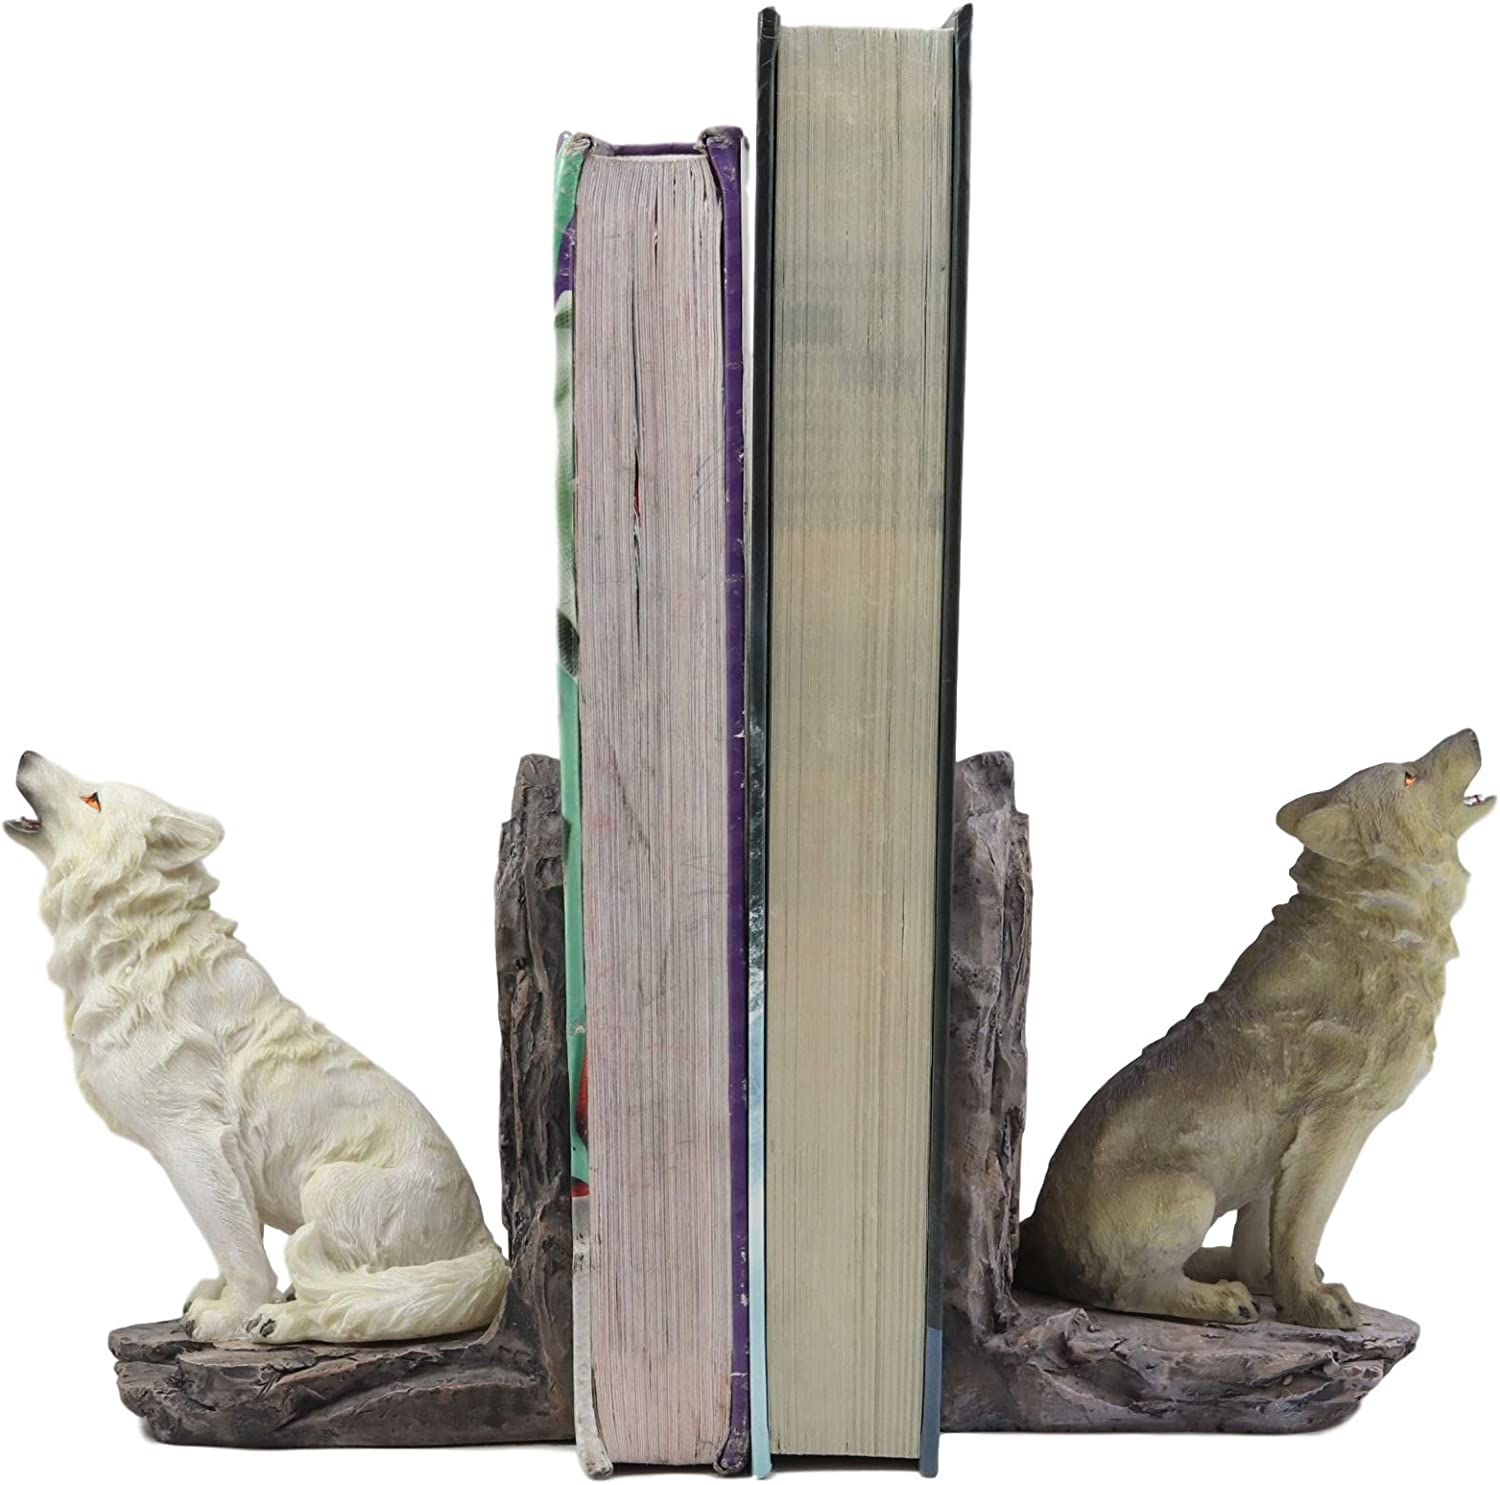 Ebros Animal Totem Spirit Outlet SALE Challenge the lowest price of Japan Howling Decorativ Gray And Snow Wolves